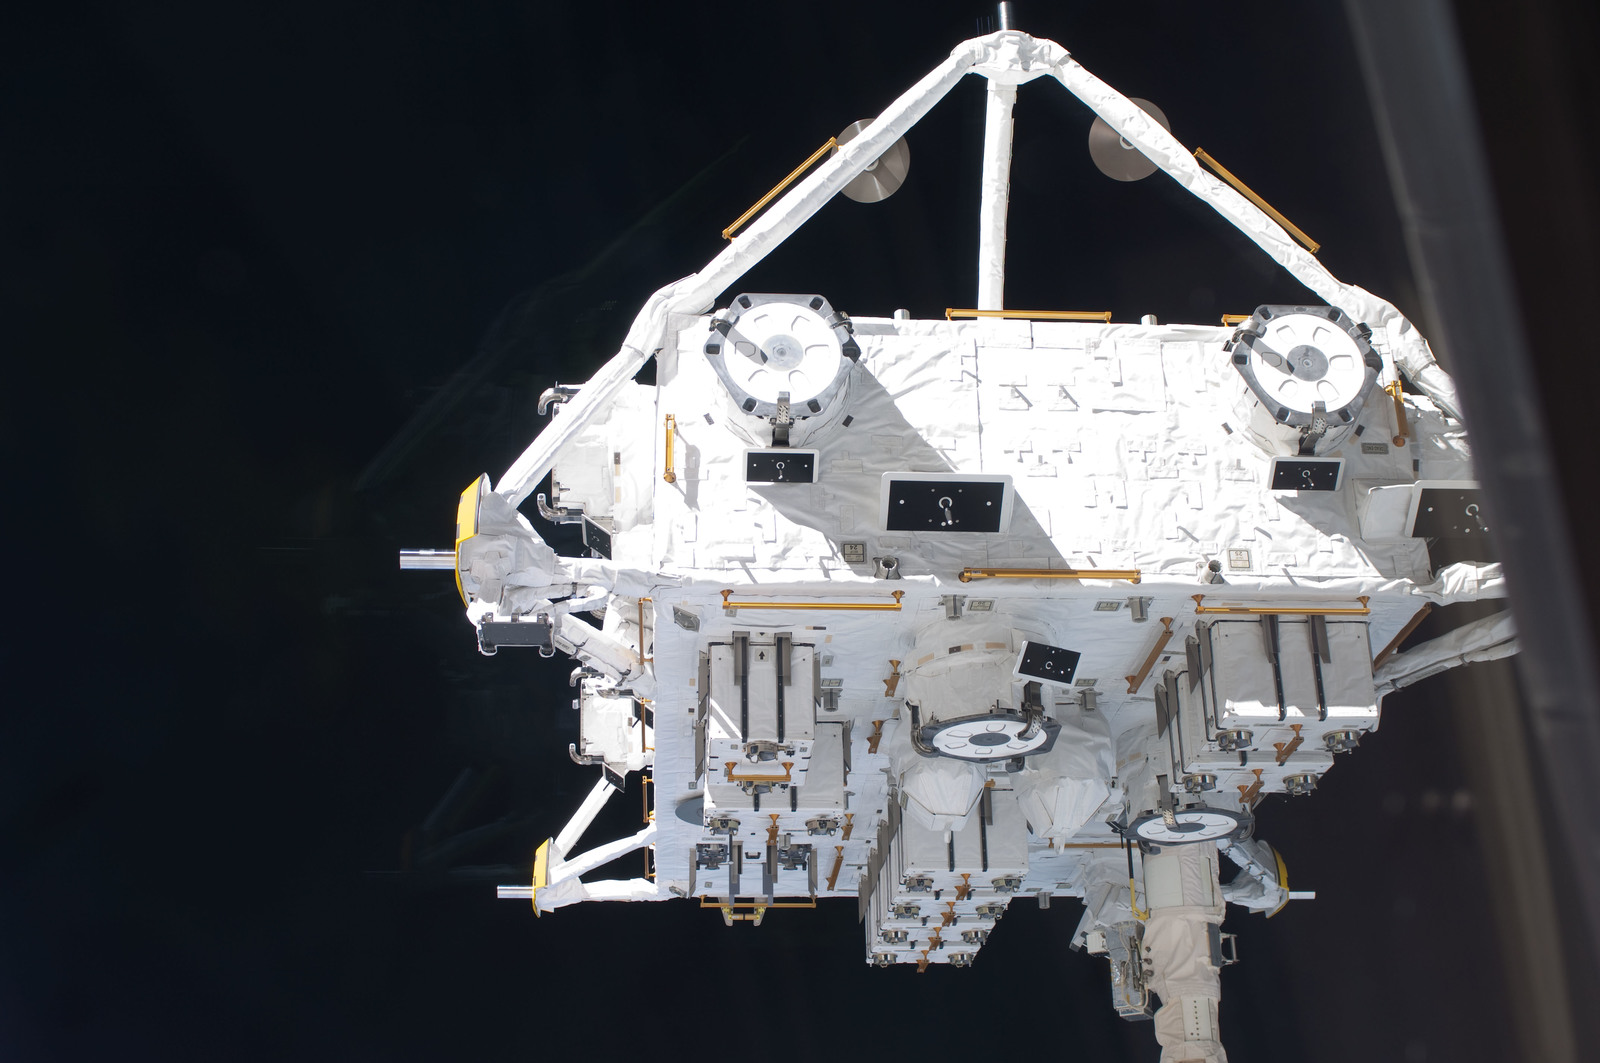 S127E006856 - STS-127 - SSRMS moves JEF during EVA-1 on STS-127 / Expedition 20 Joint Operations